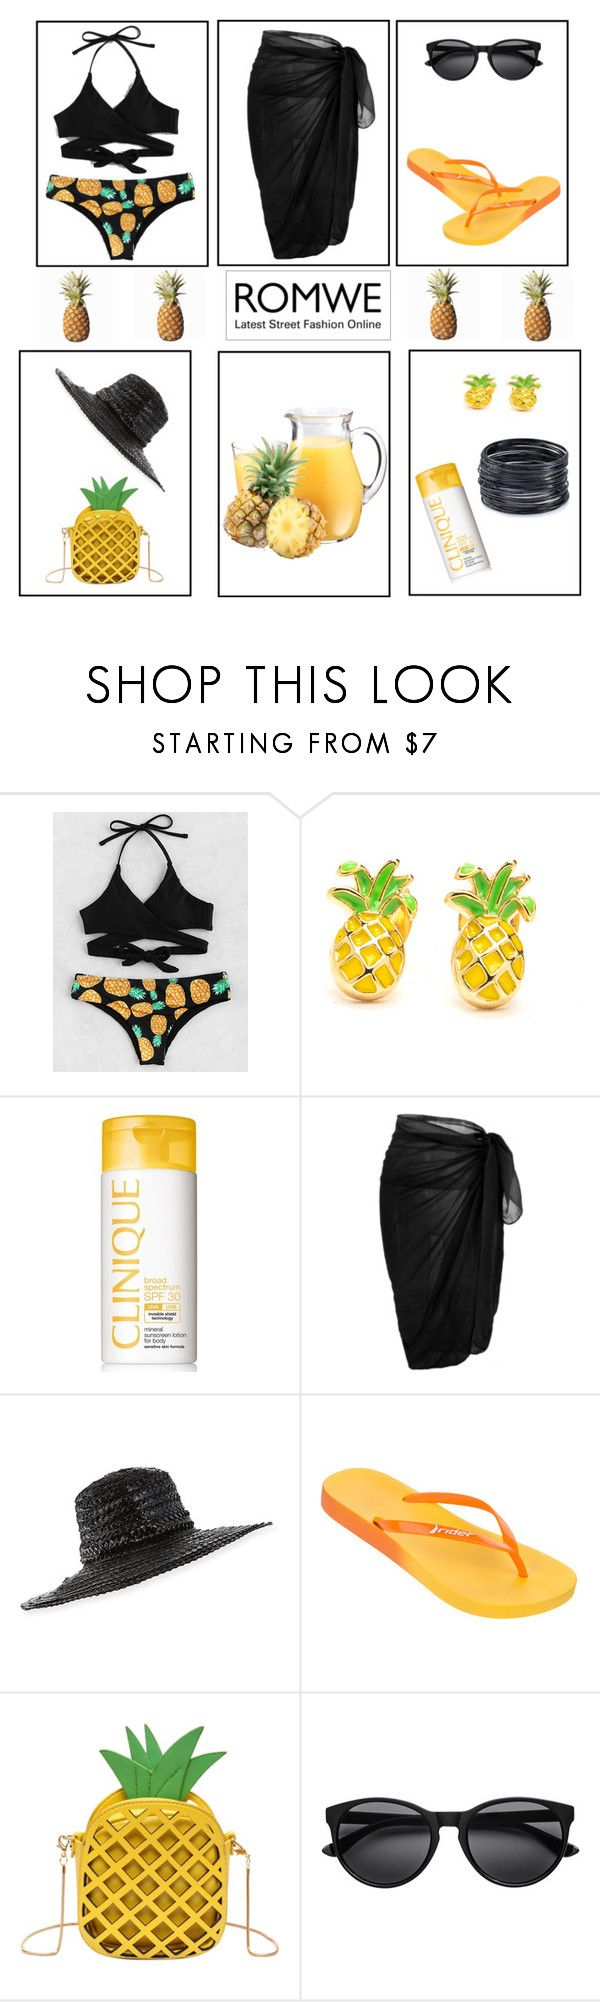 """pineapple print bikini-romwe"" by pam-doel ❤ liked on Polyvore featuring Clinique, Gigi Burris Millinery, Rider and ABS by Allen Schwartz"